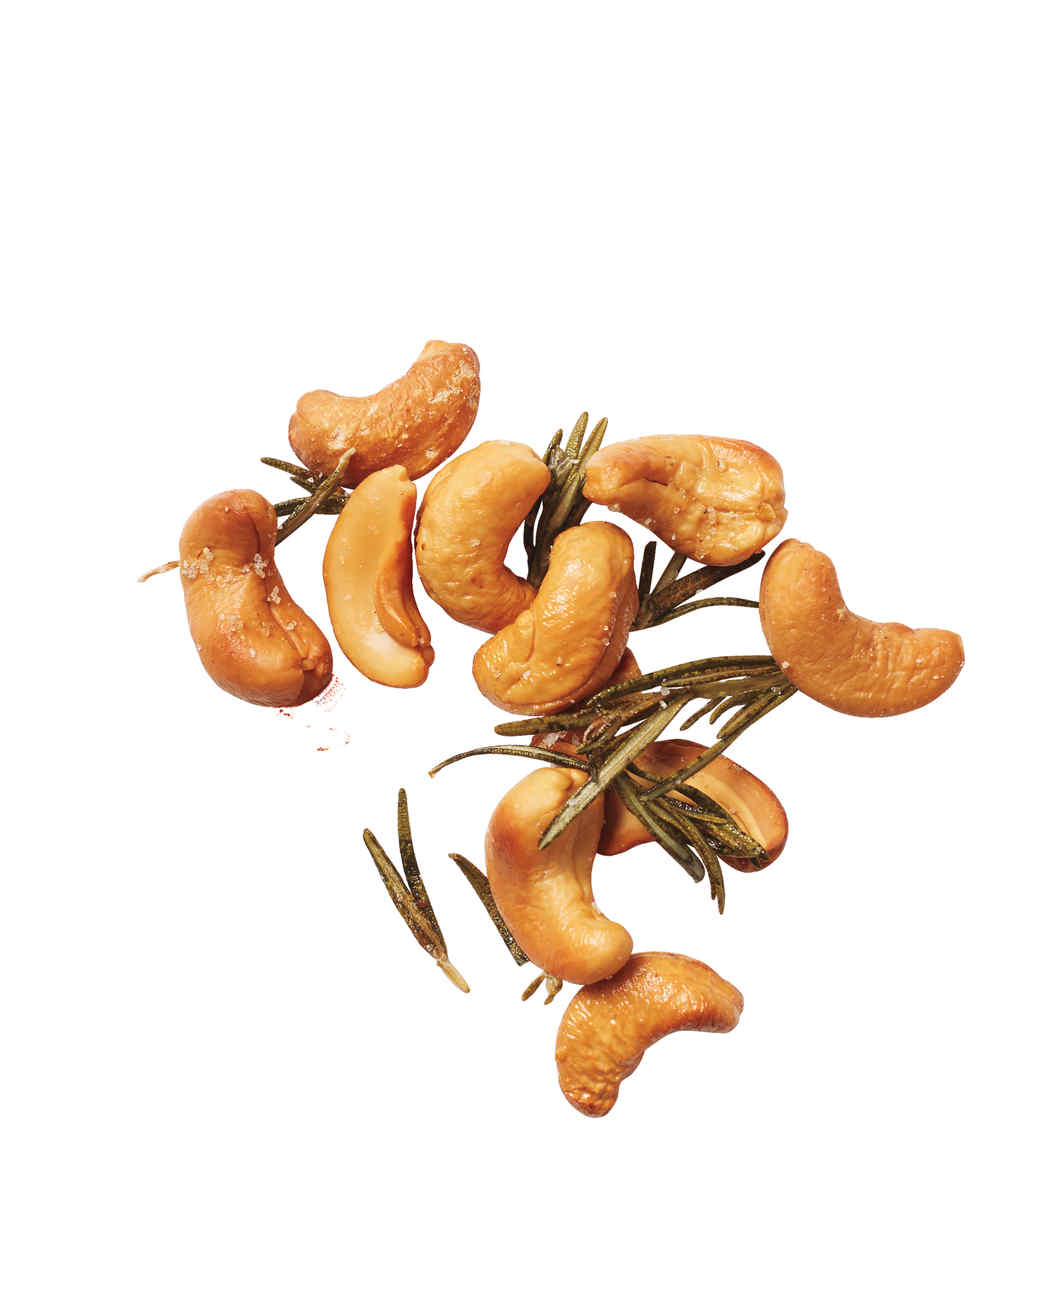 rosemary-cashews-141-d111168.jpg